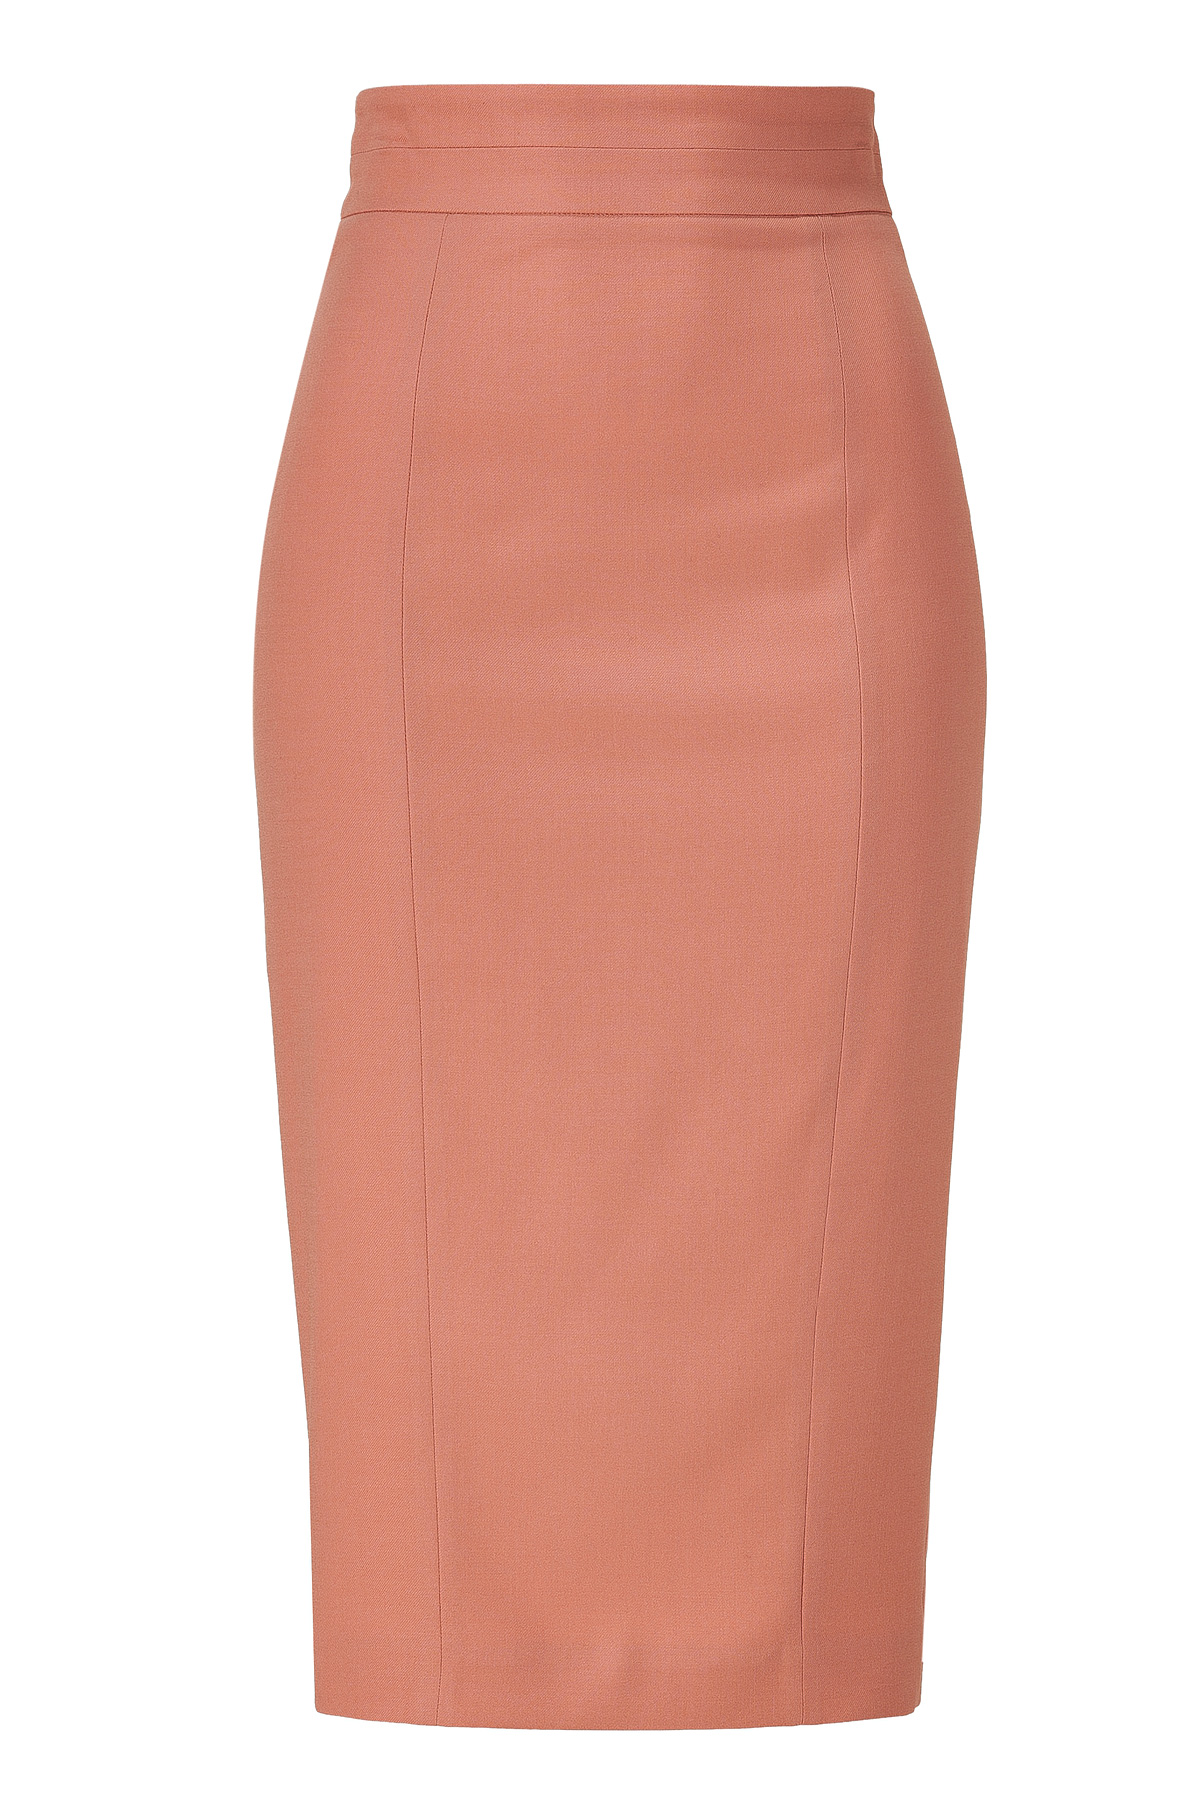 L'wren scott Burnt Coral High Waisted Pencil Skirt in Pink | Lyst